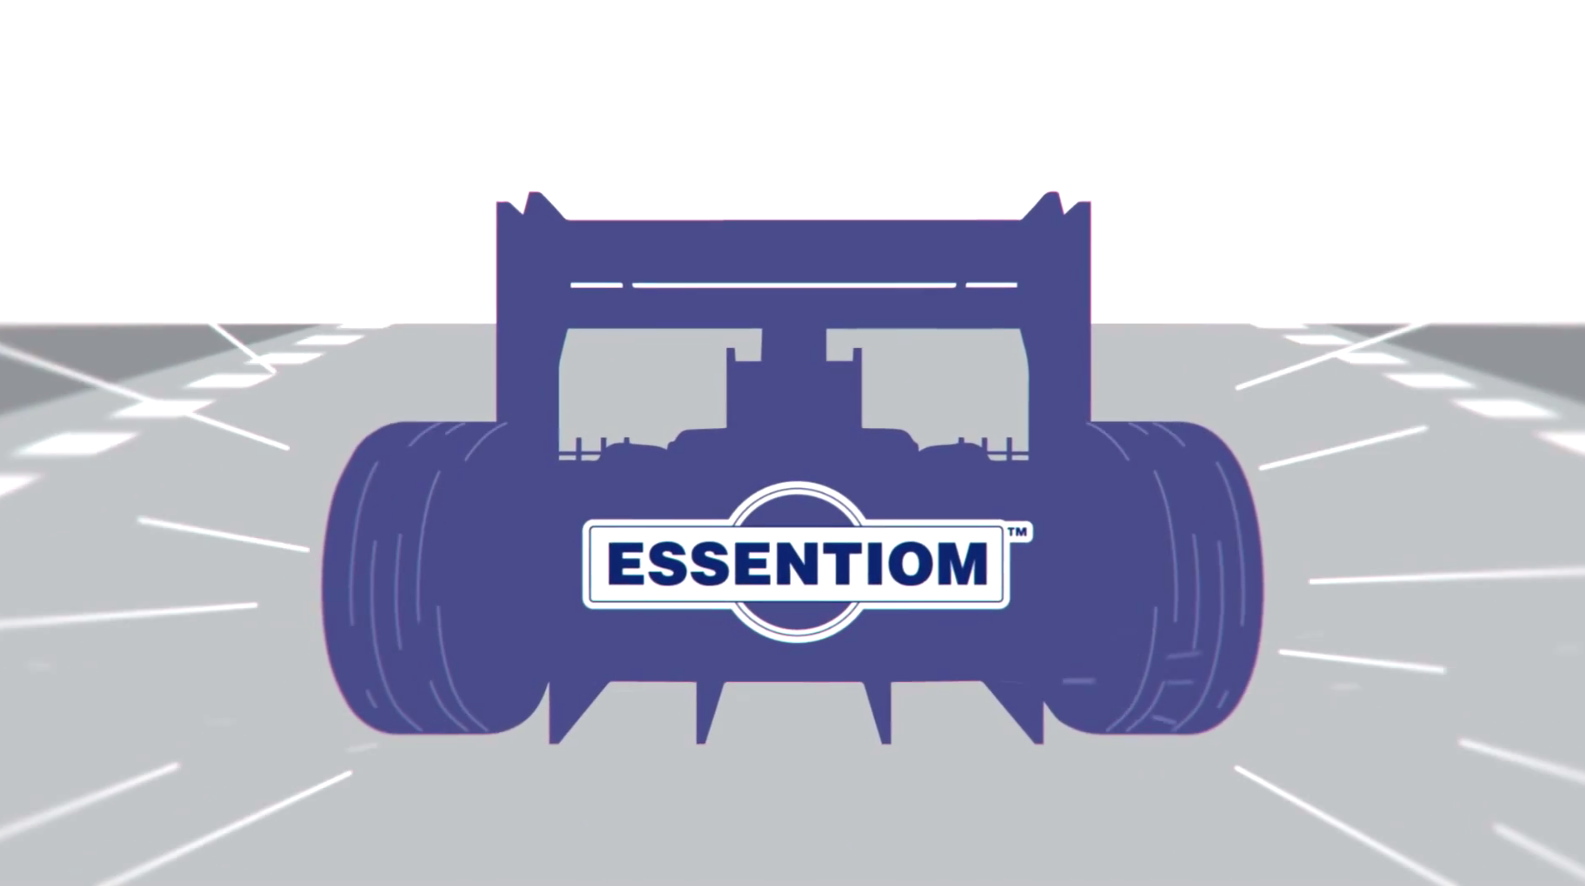 ESSENTIOM